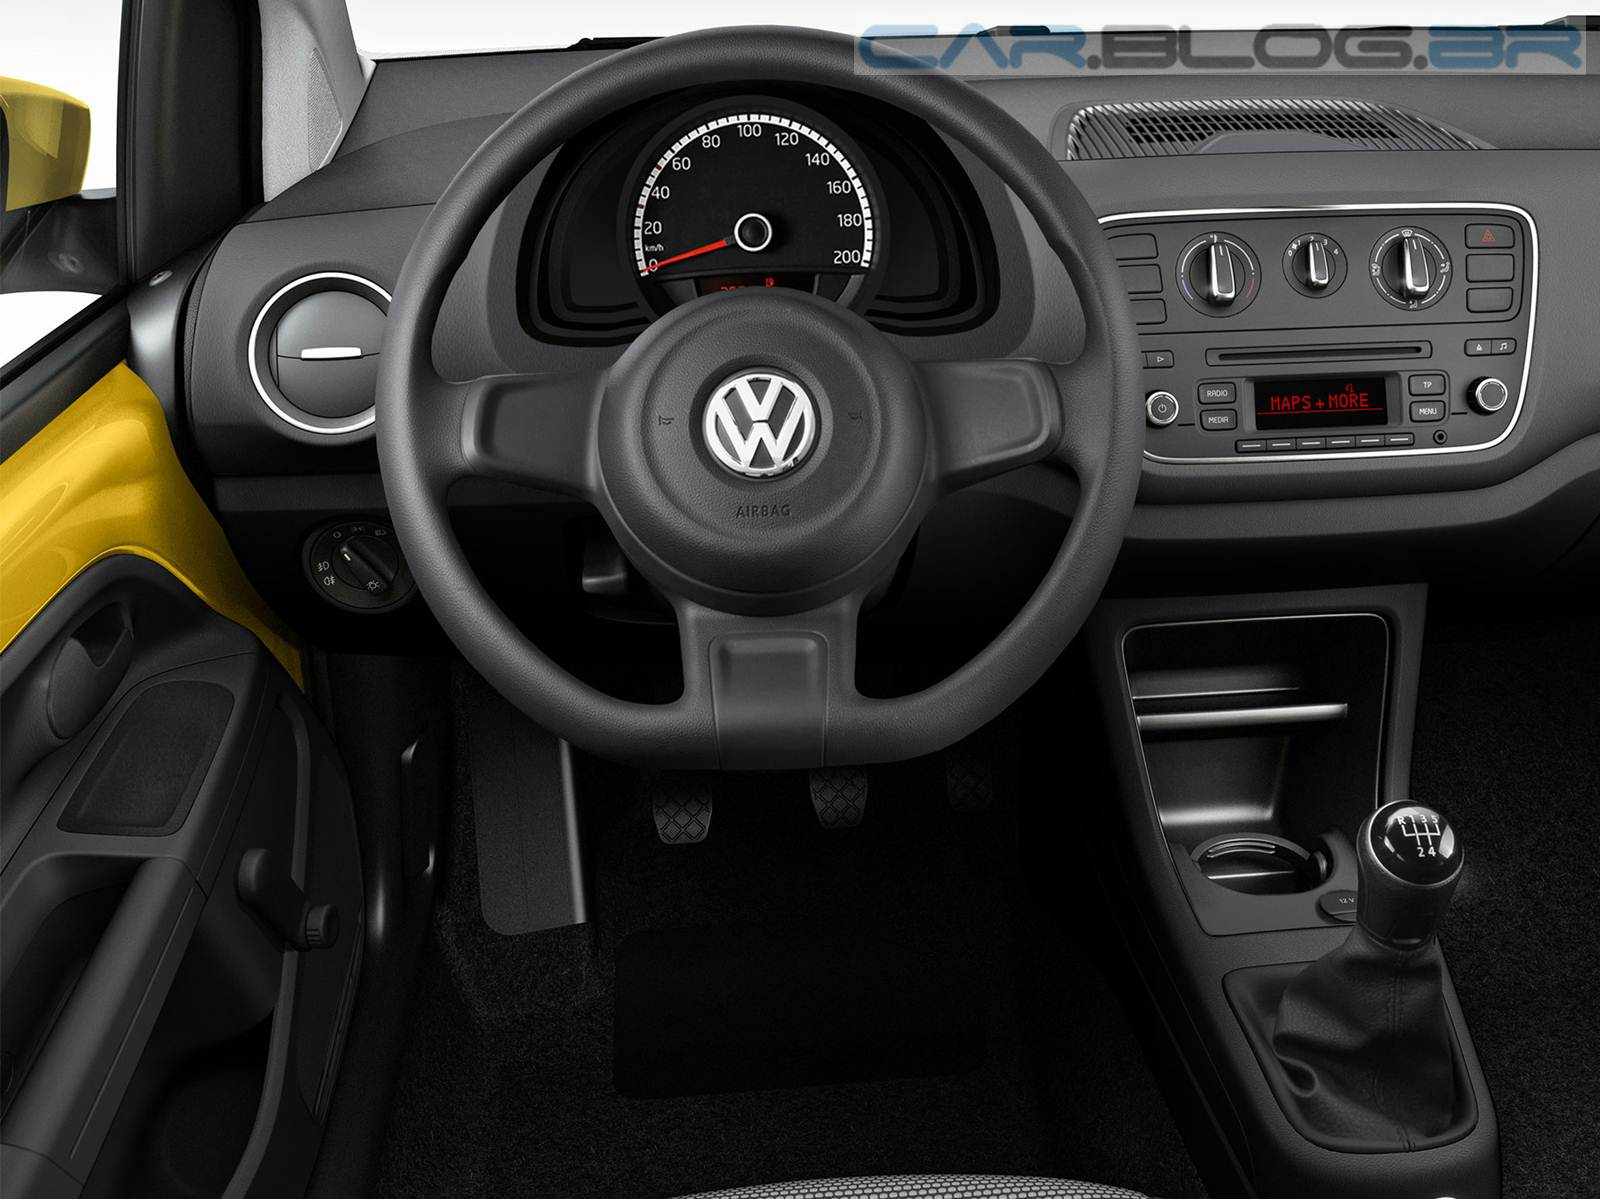 Volkswagen up! Take-up! - interior - painel